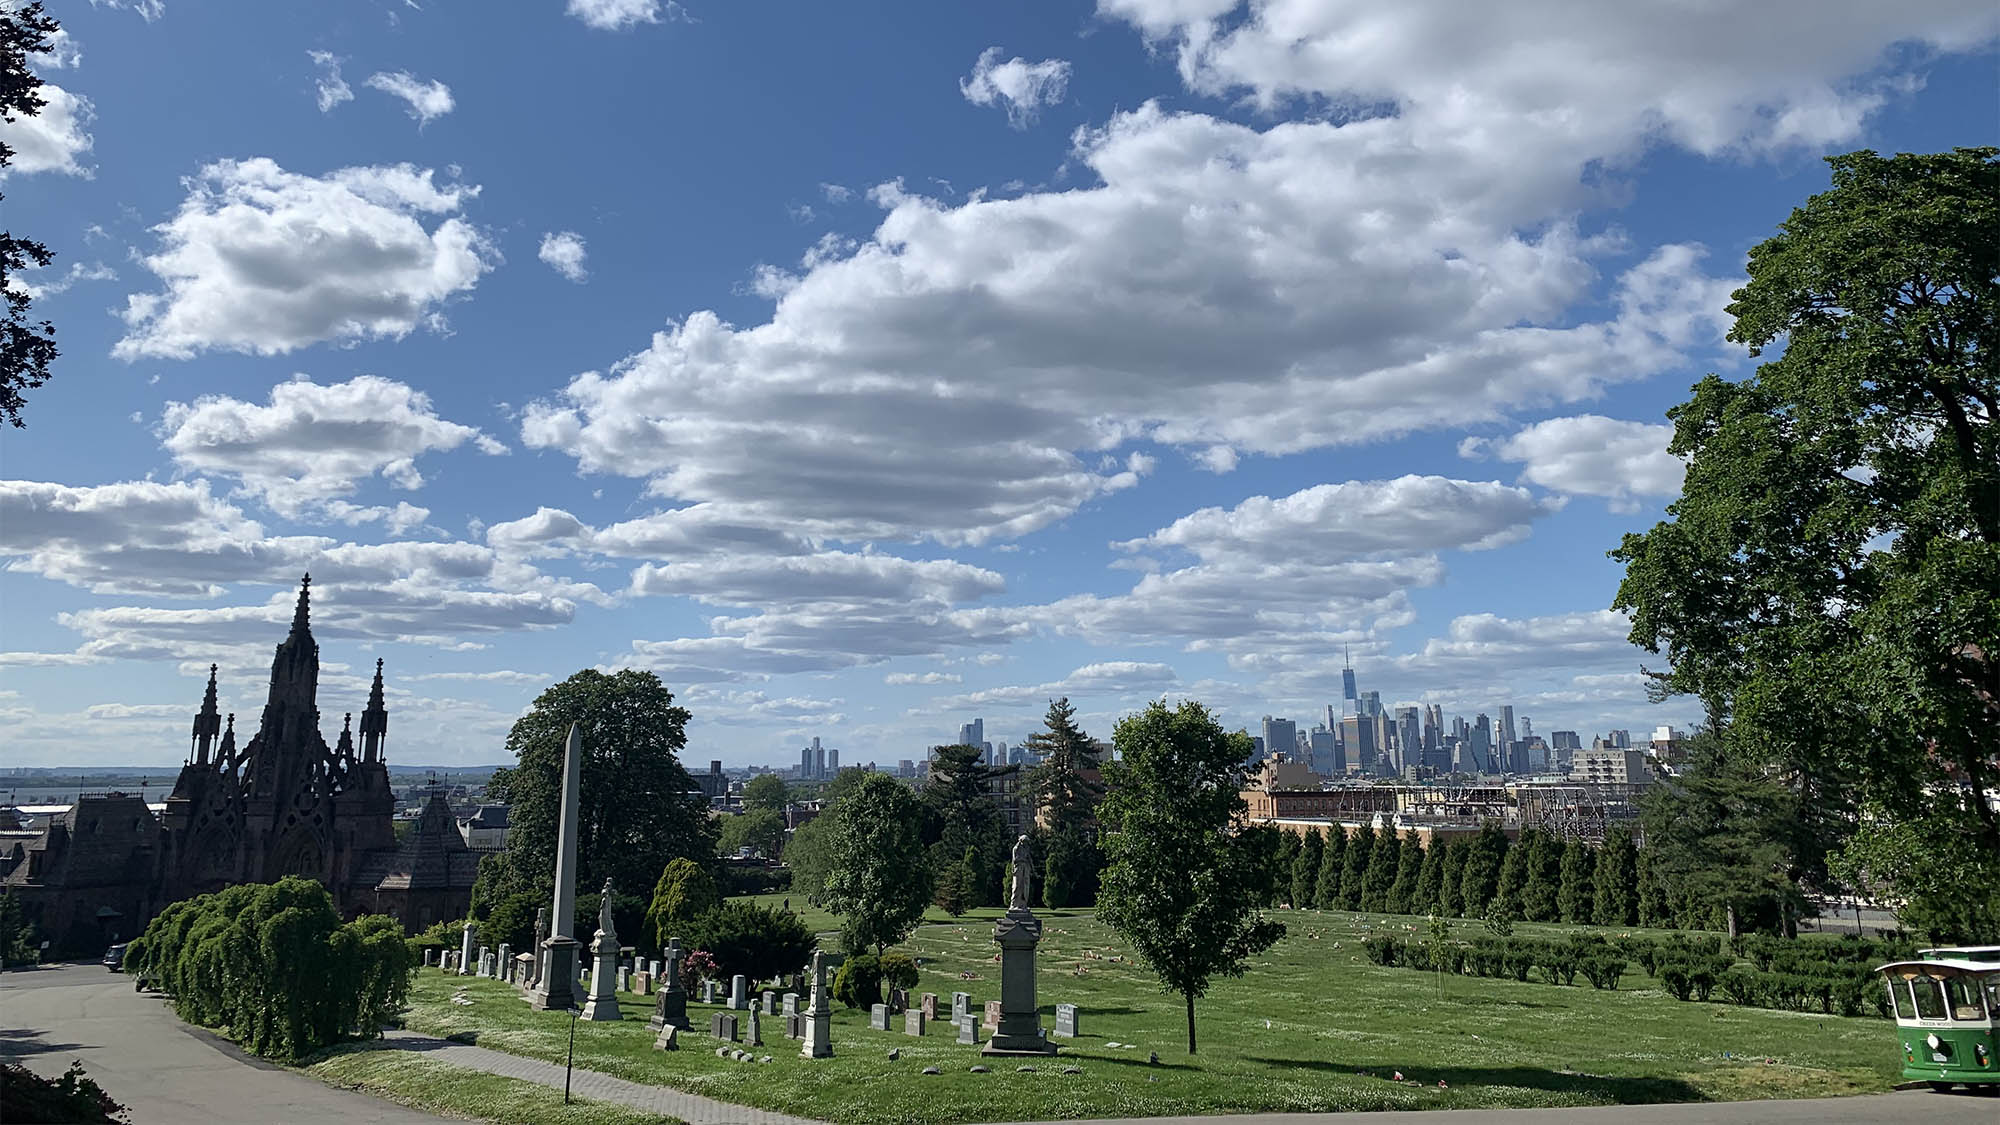 Headstones at Greenwood Cemetery Brooklyn with Manhattan skyline in background